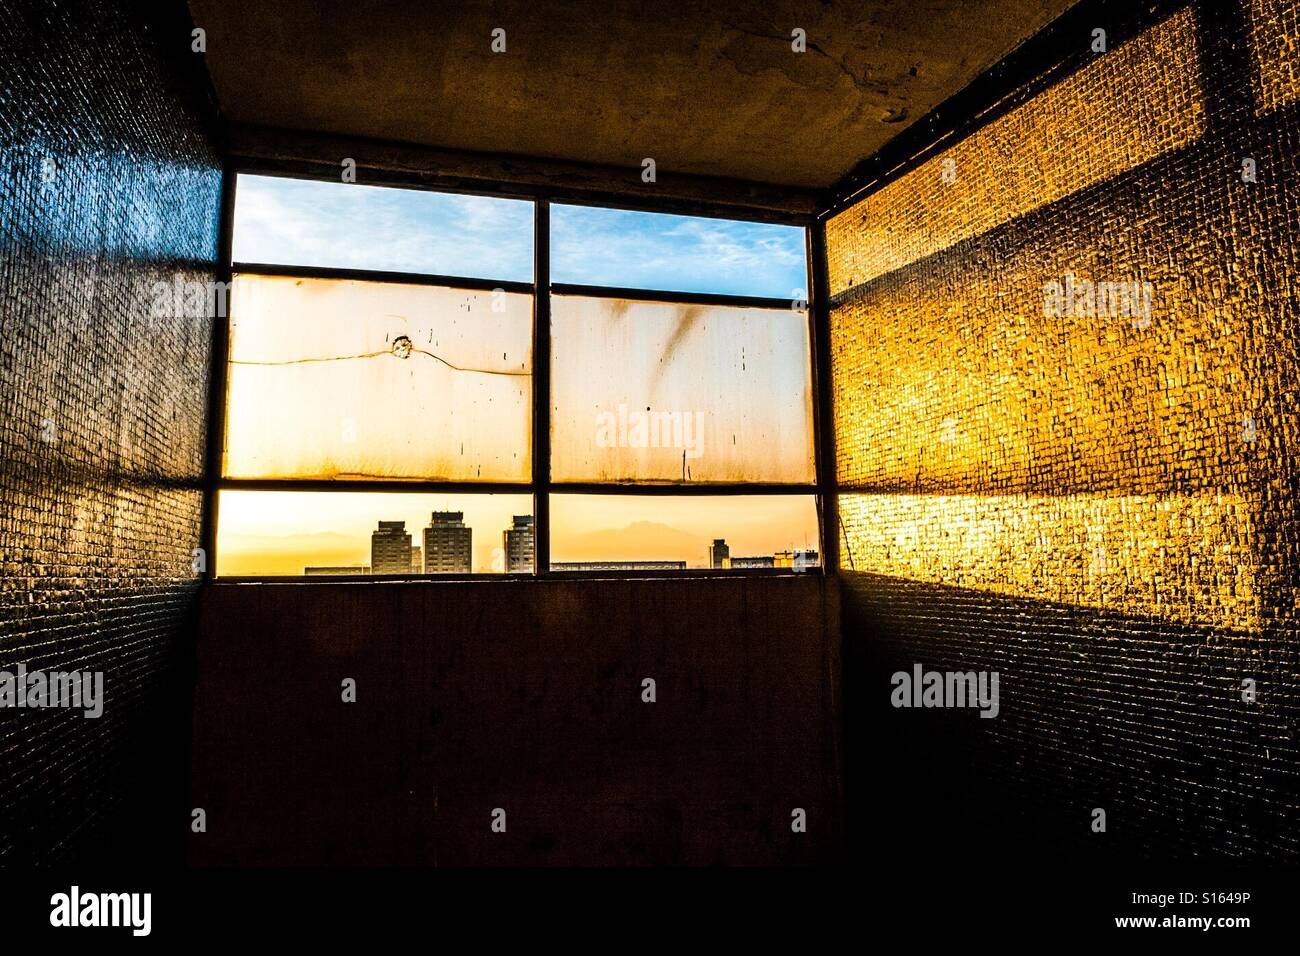 View of sunset from a project building Tlatelolco in México city - Stock Image